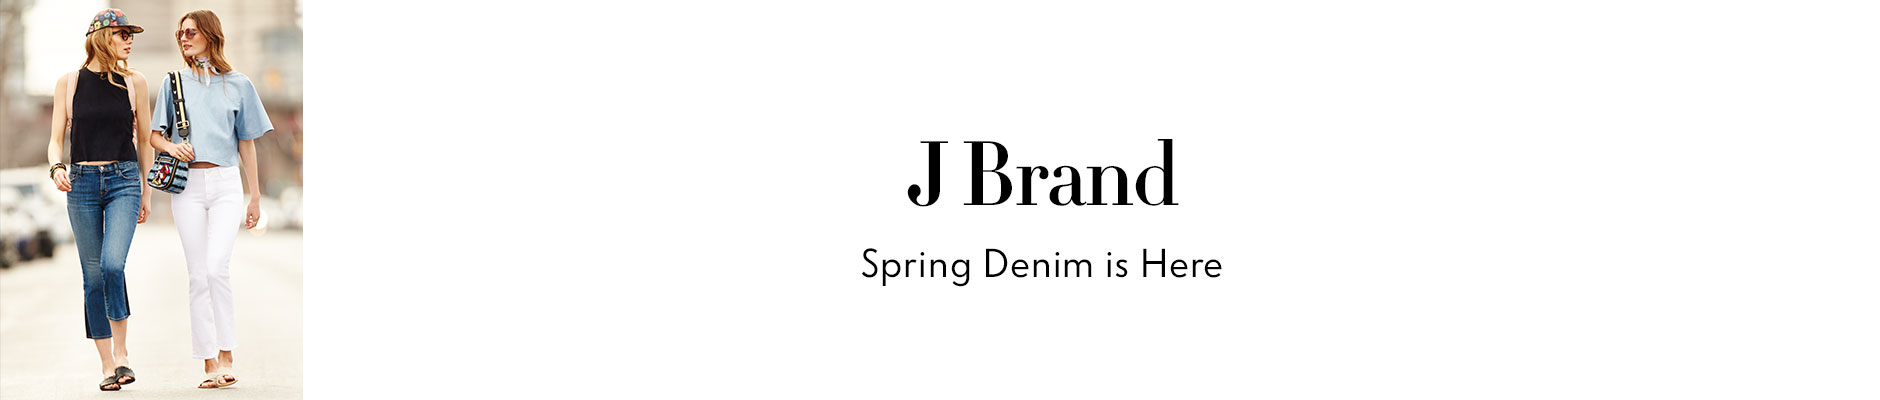 J Brand - spring denim is here